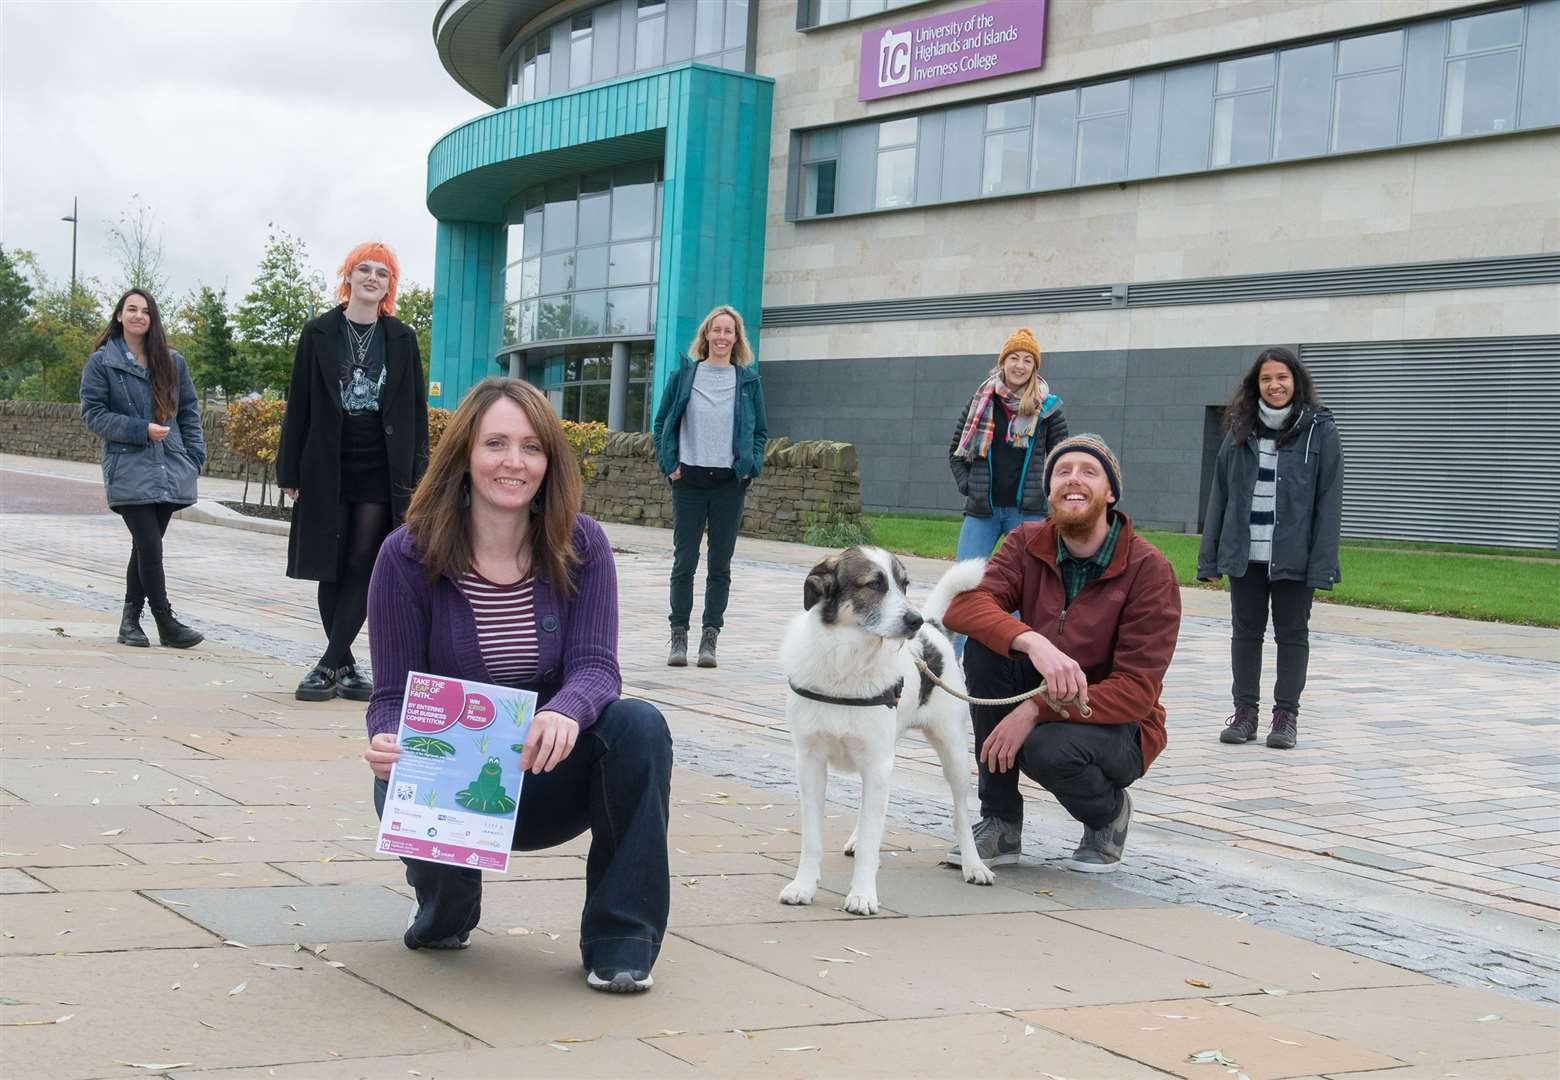 Left to right, Postgraduate research students' Celia Delugin, Lydia McGill, Alison Martin, Joanna Rodgers, Sunny Bradbury and Odin the dog, and Shraveena Venkatesh. Nursing student Roma Gibb pictured at the front.